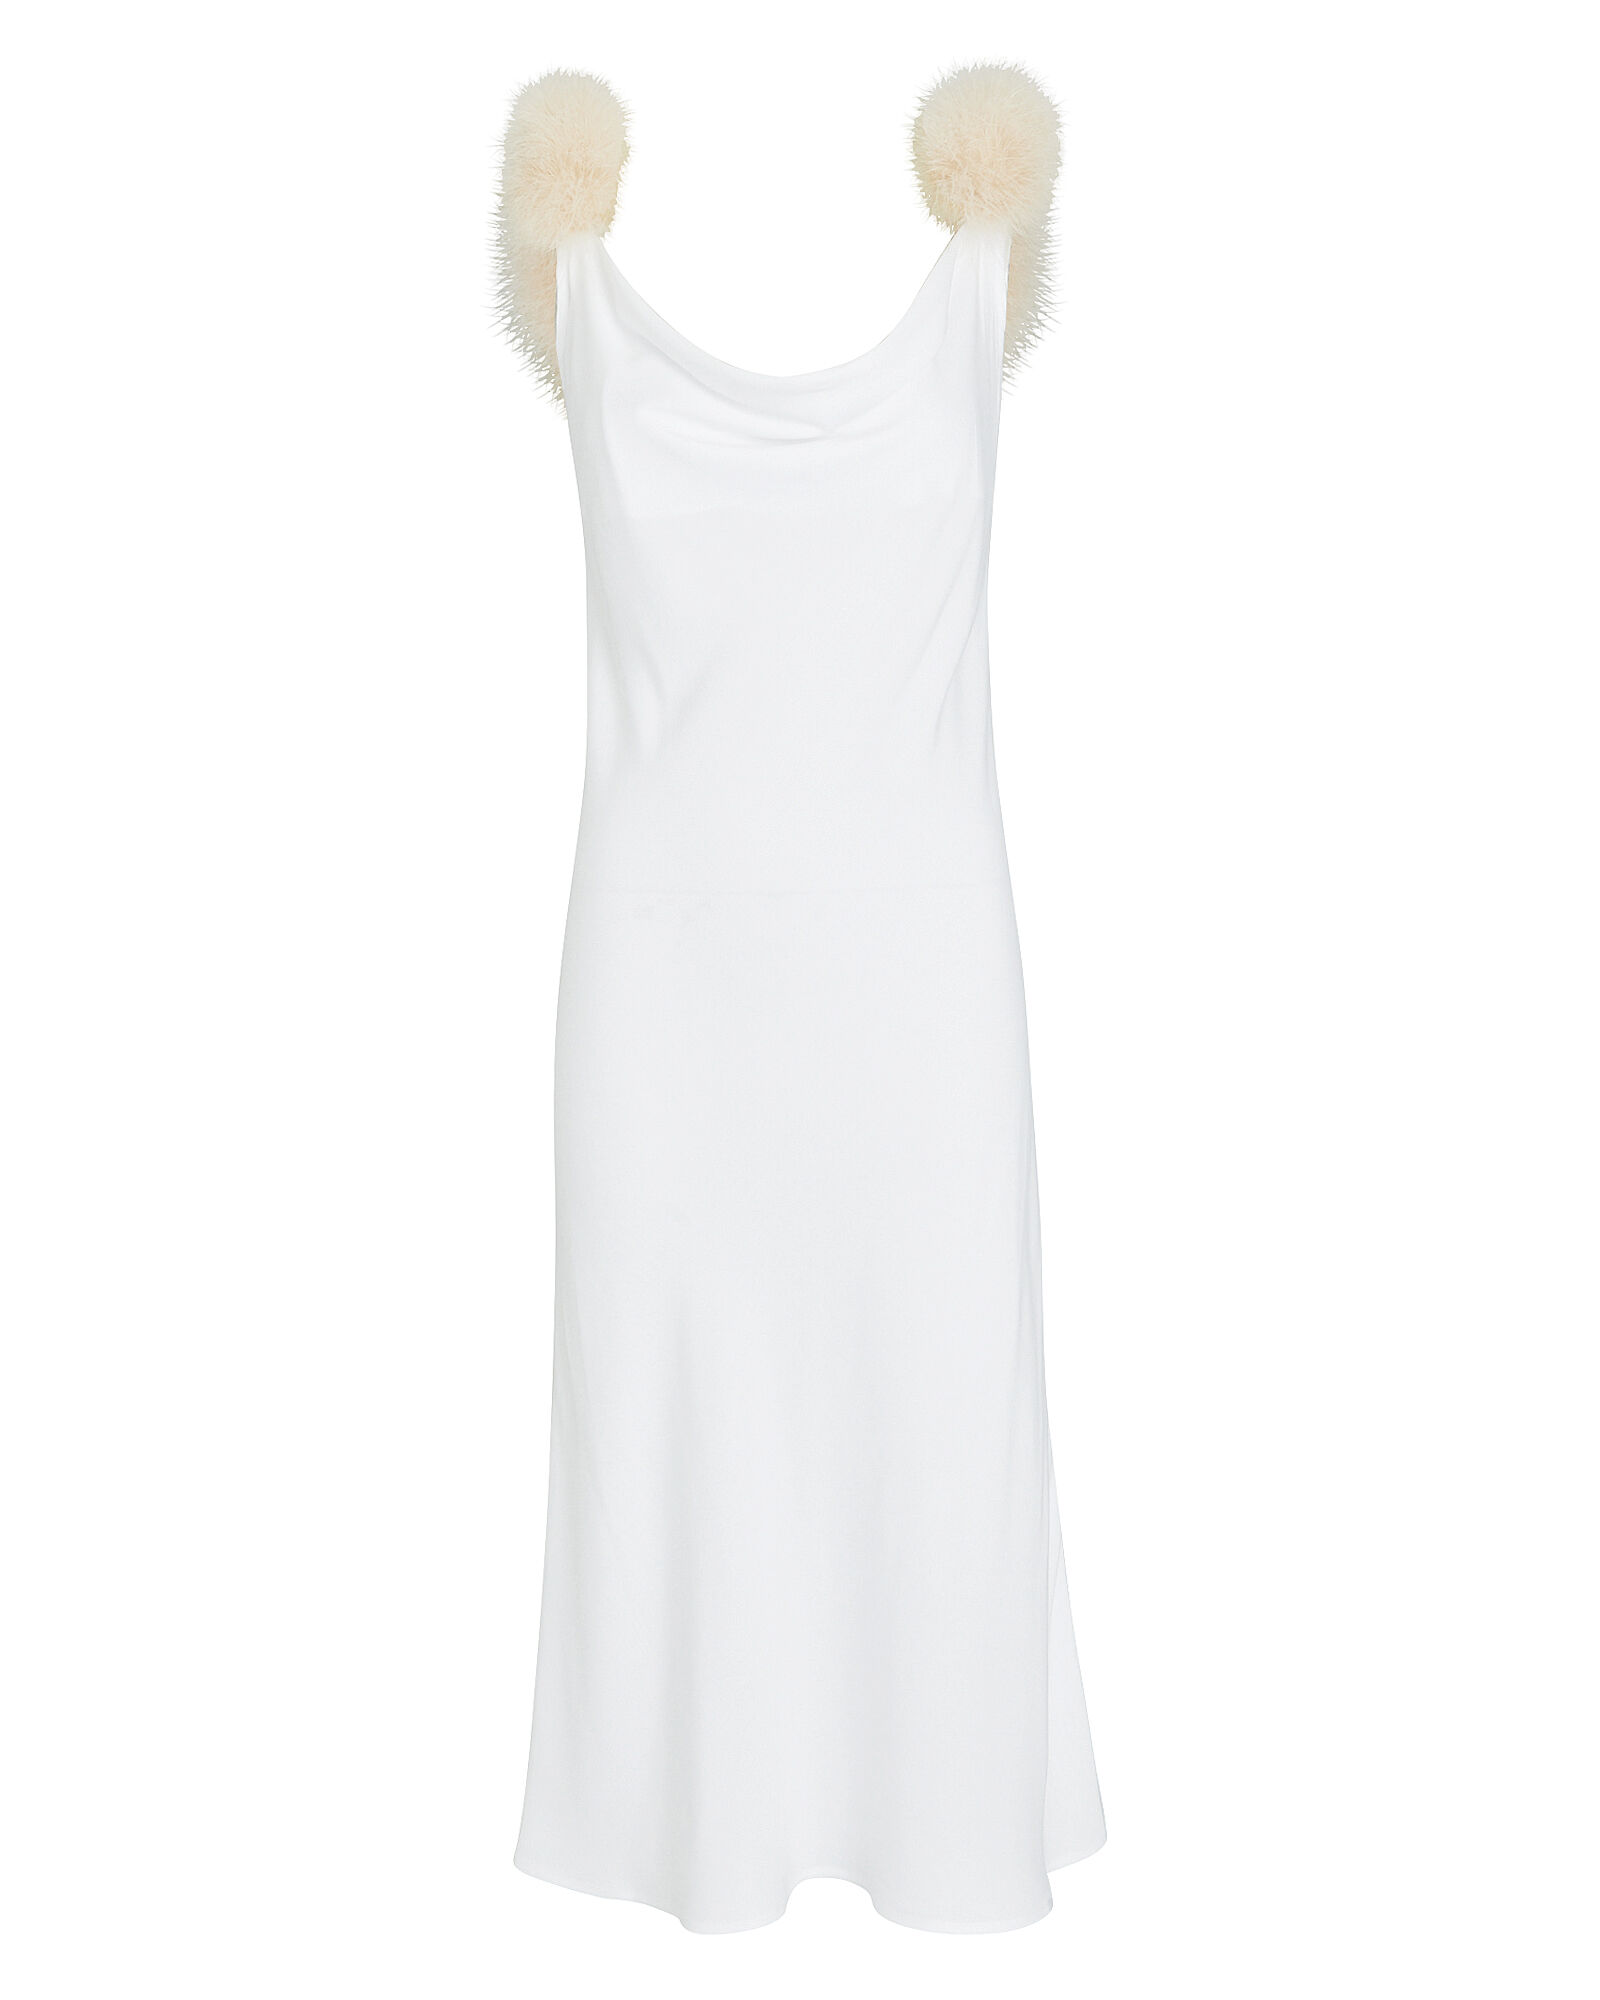 Voulez Vous Dancer Slip Dress, WHITE, hi-res